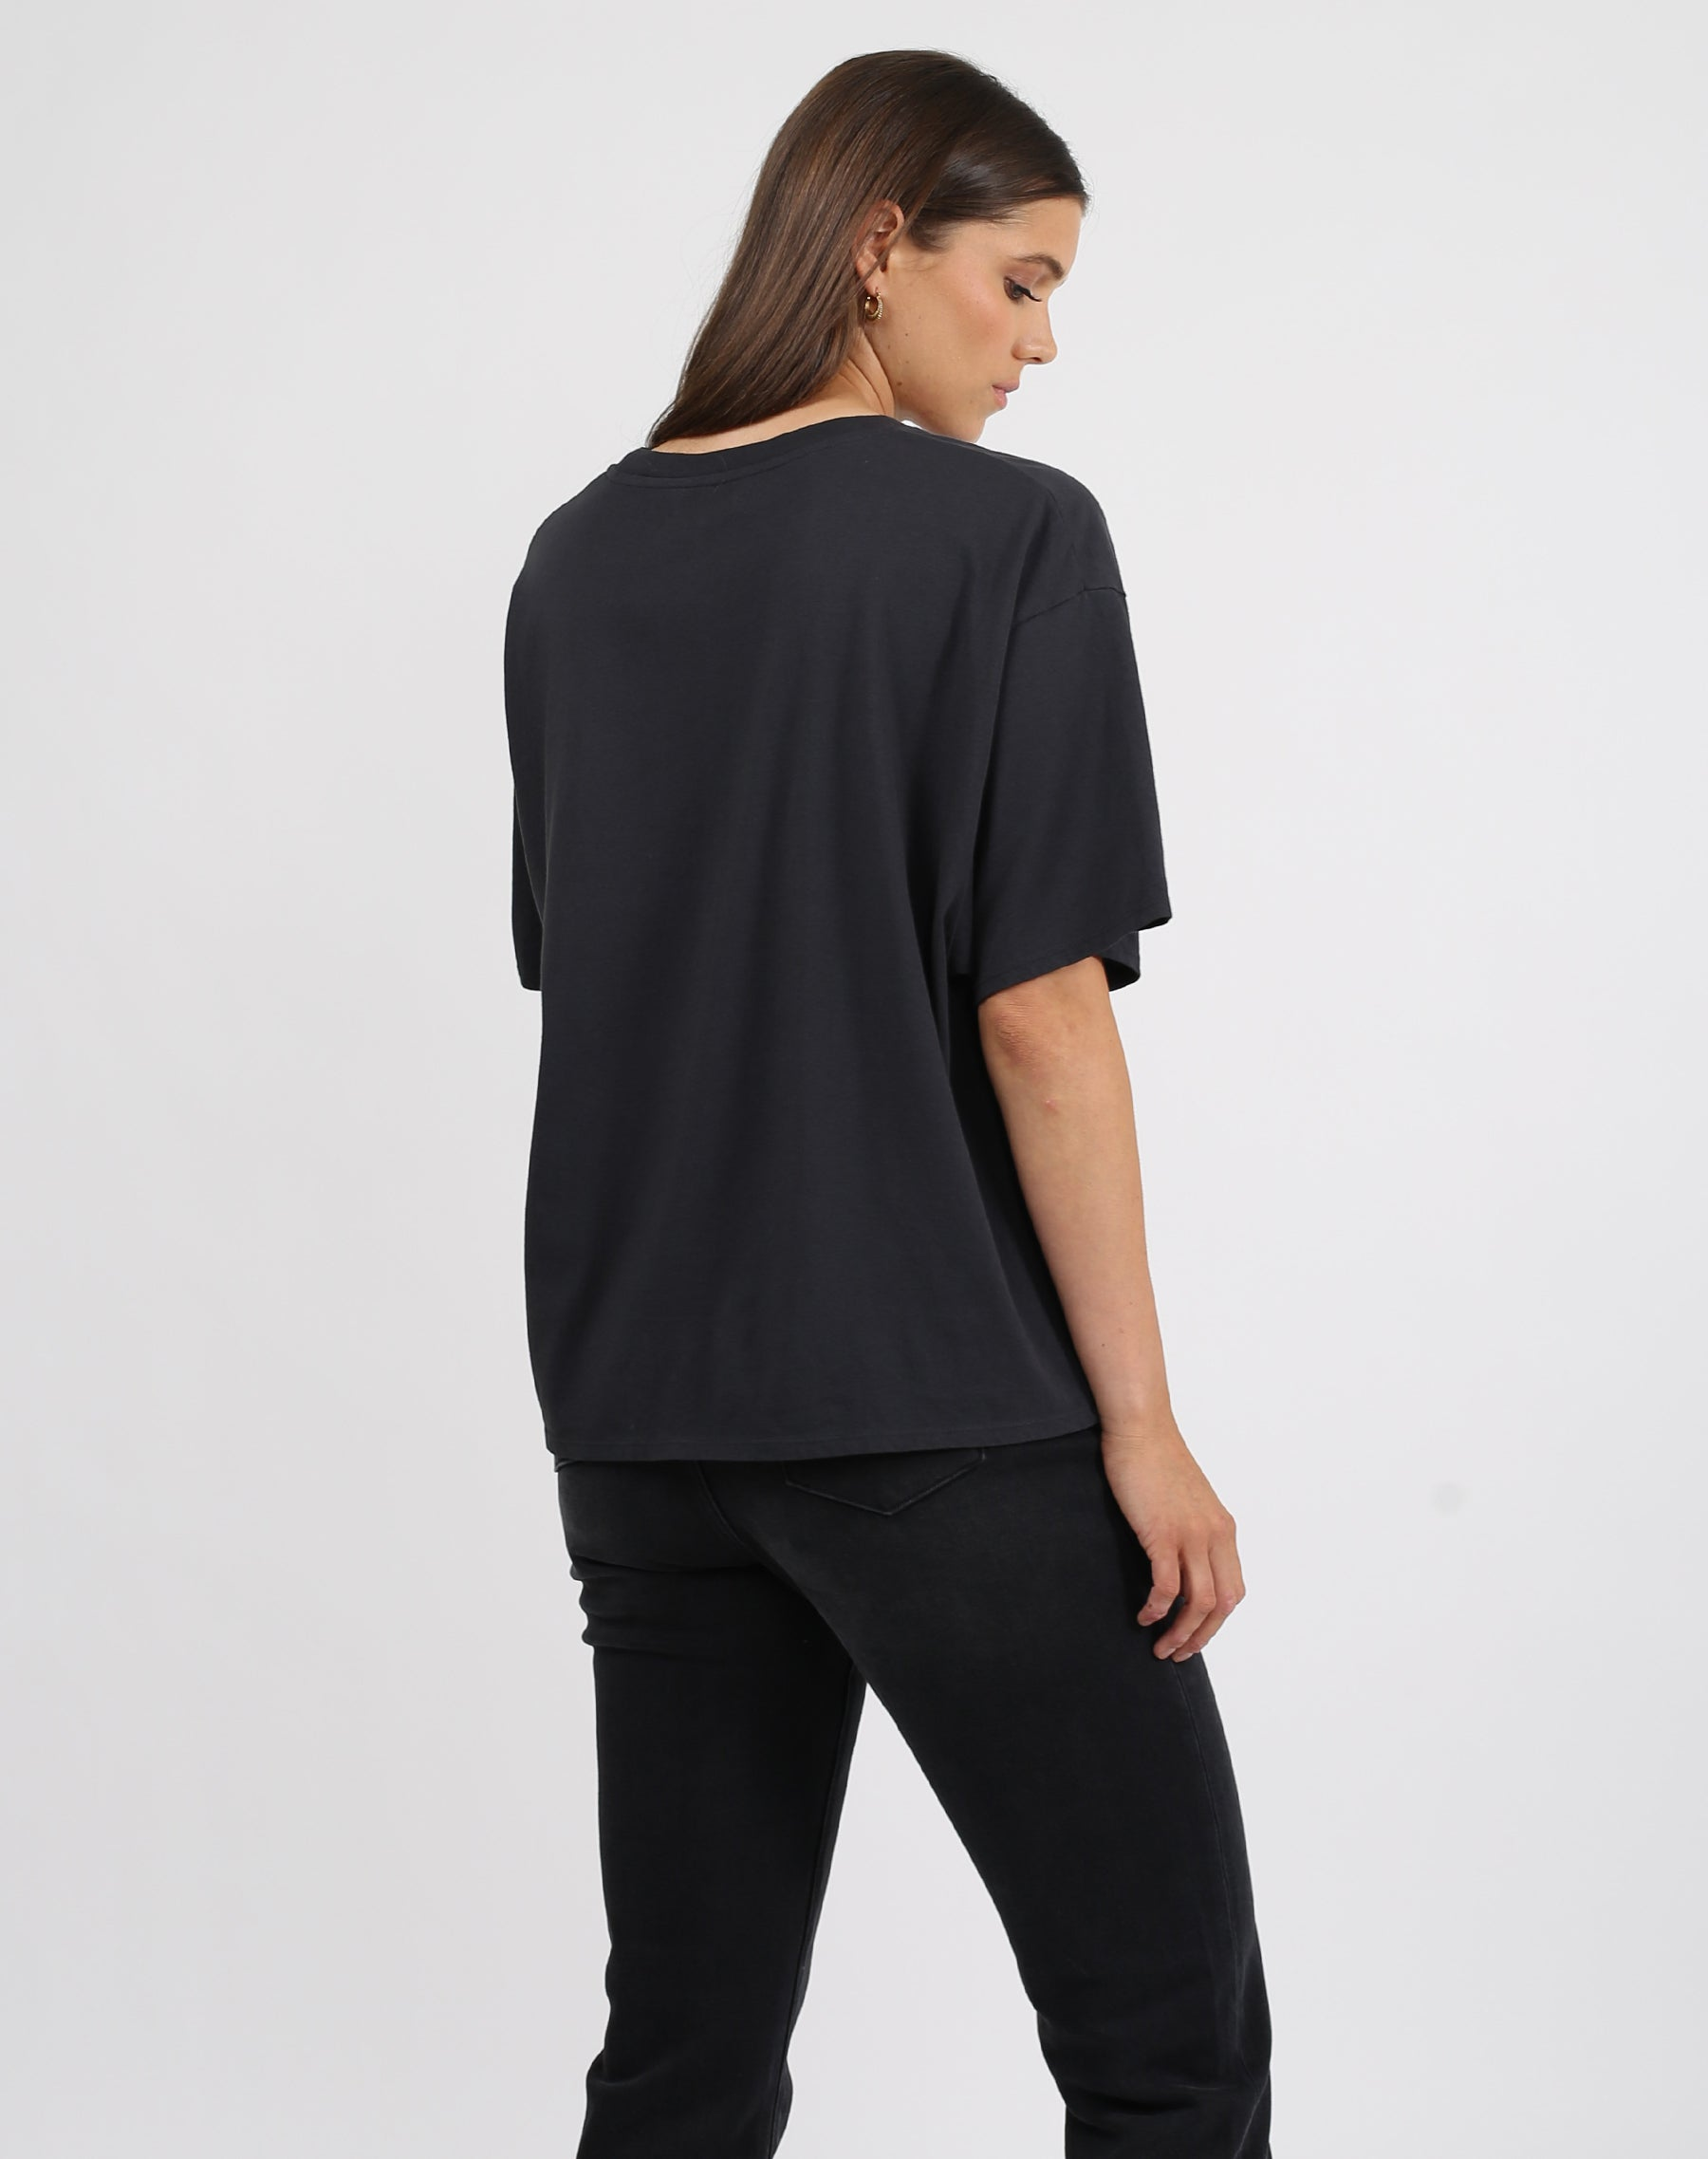 This is a photo of the back of a model wearing the babes club leopard boxy crew neck tee in black by brunette the label.